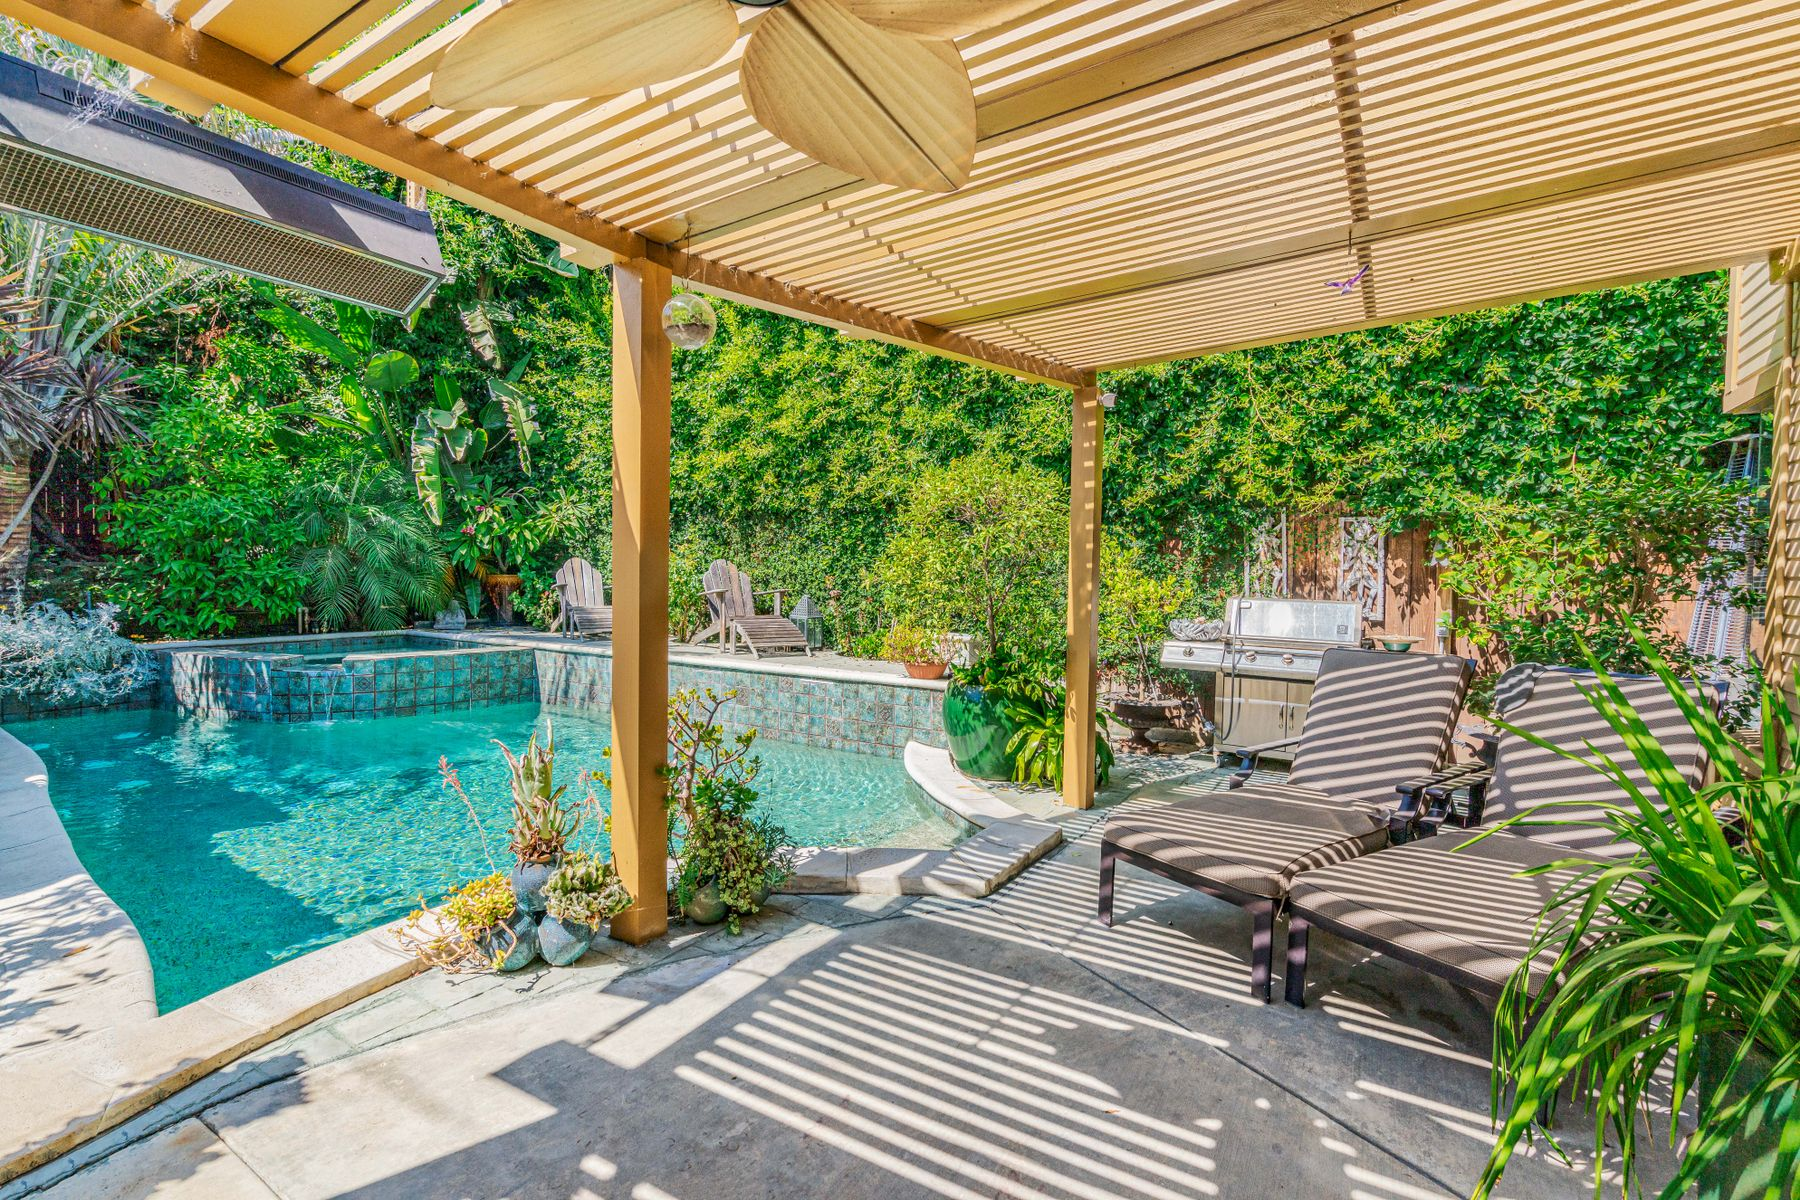 Single Family Homes for Sale at Rare Find in the heart of West Hollywood 825 Huntley Drive West Hollywood, California 90069 United States